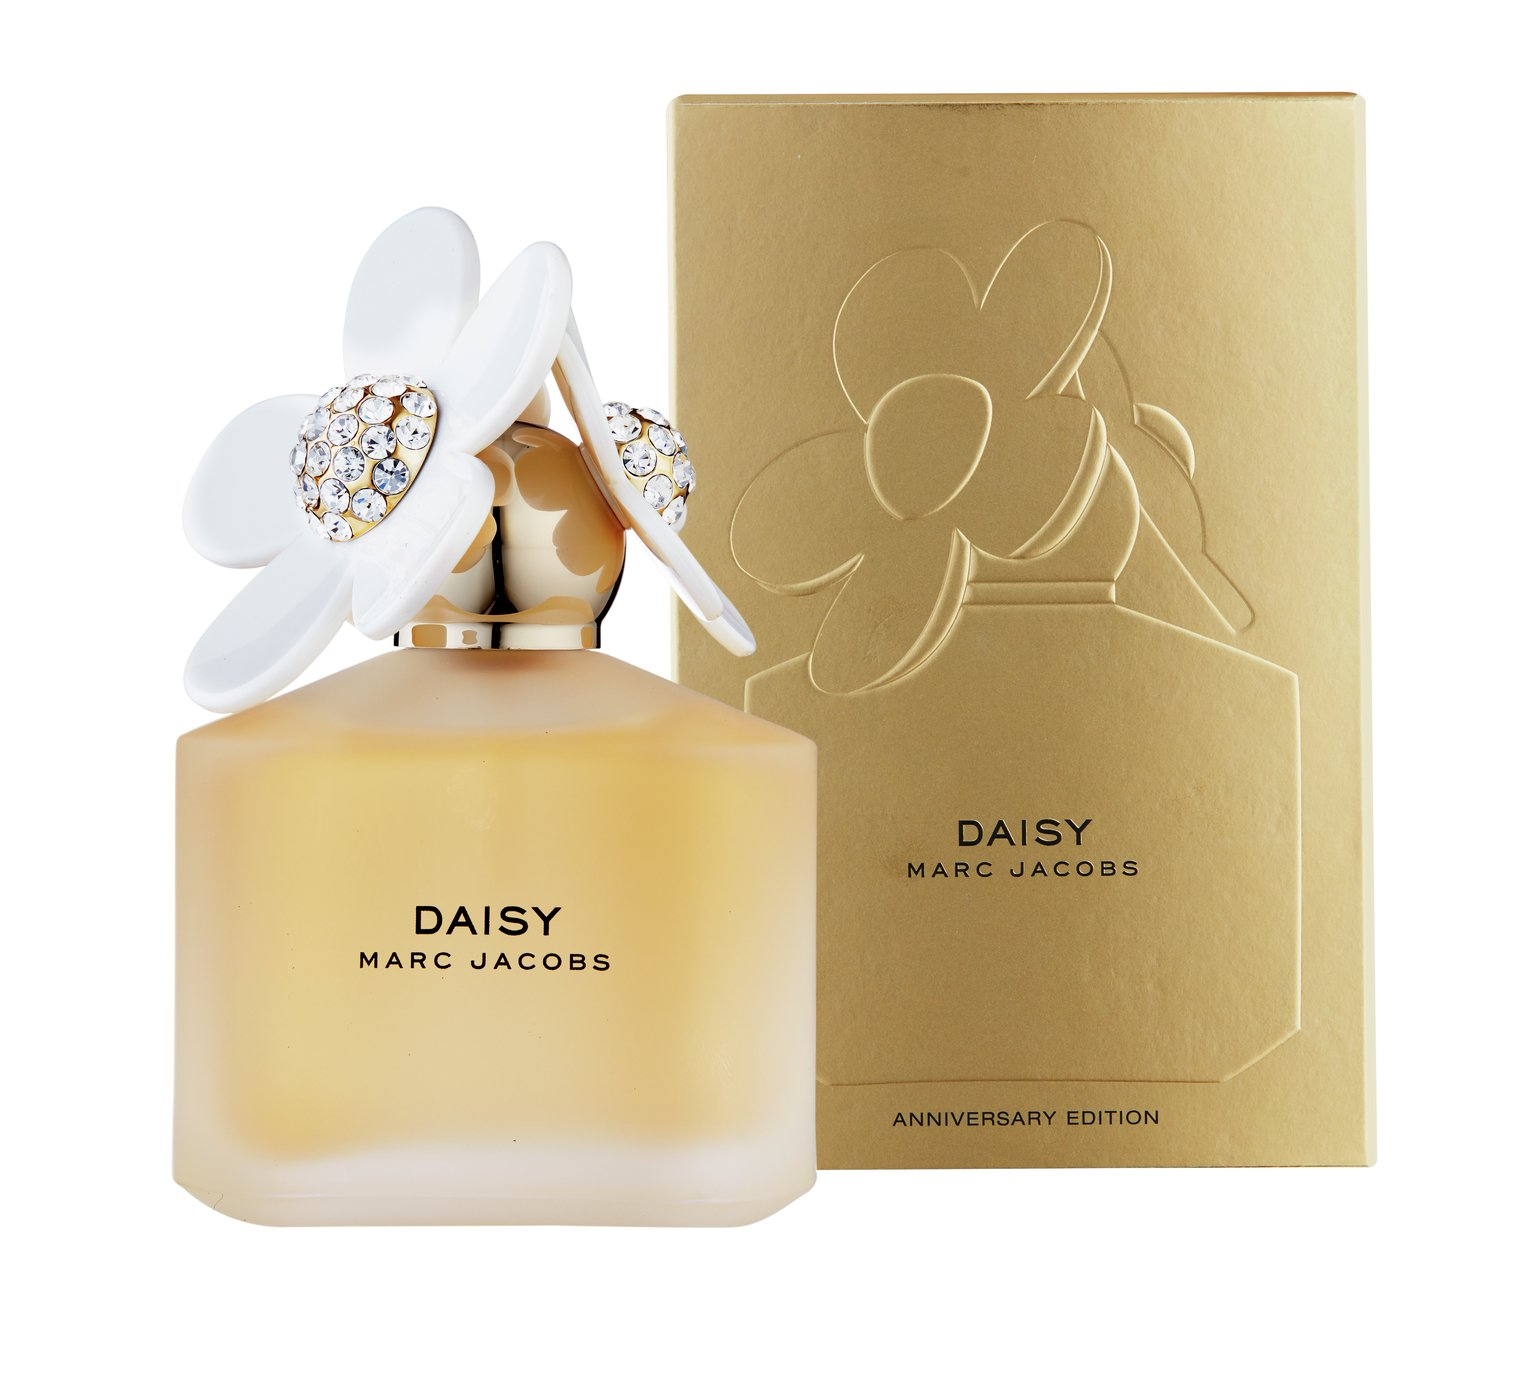 Marc Jacobs Daisy Anniversary Edition Eau De Toilette- 100ml